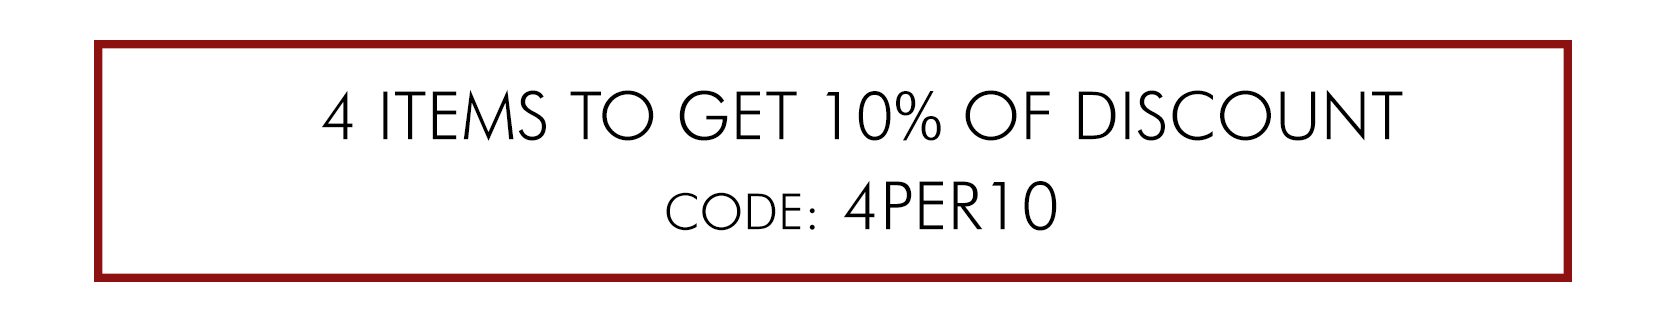 BUY 4 ITEMS TO GET 10% OF DISCOUNT